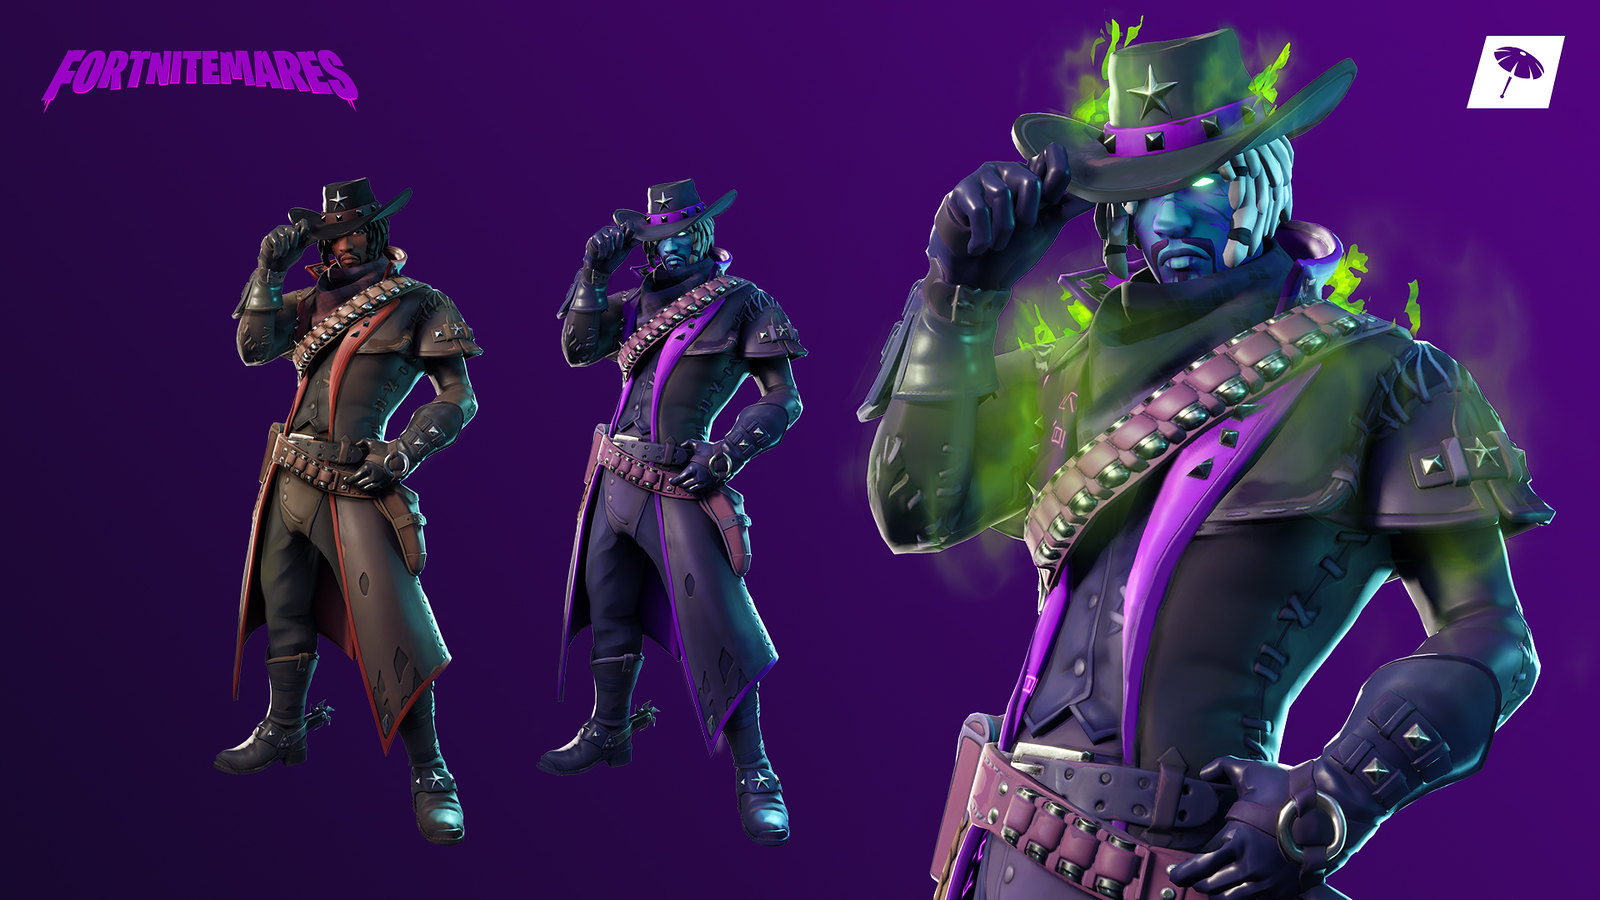 Fortnite: Fortnitemares